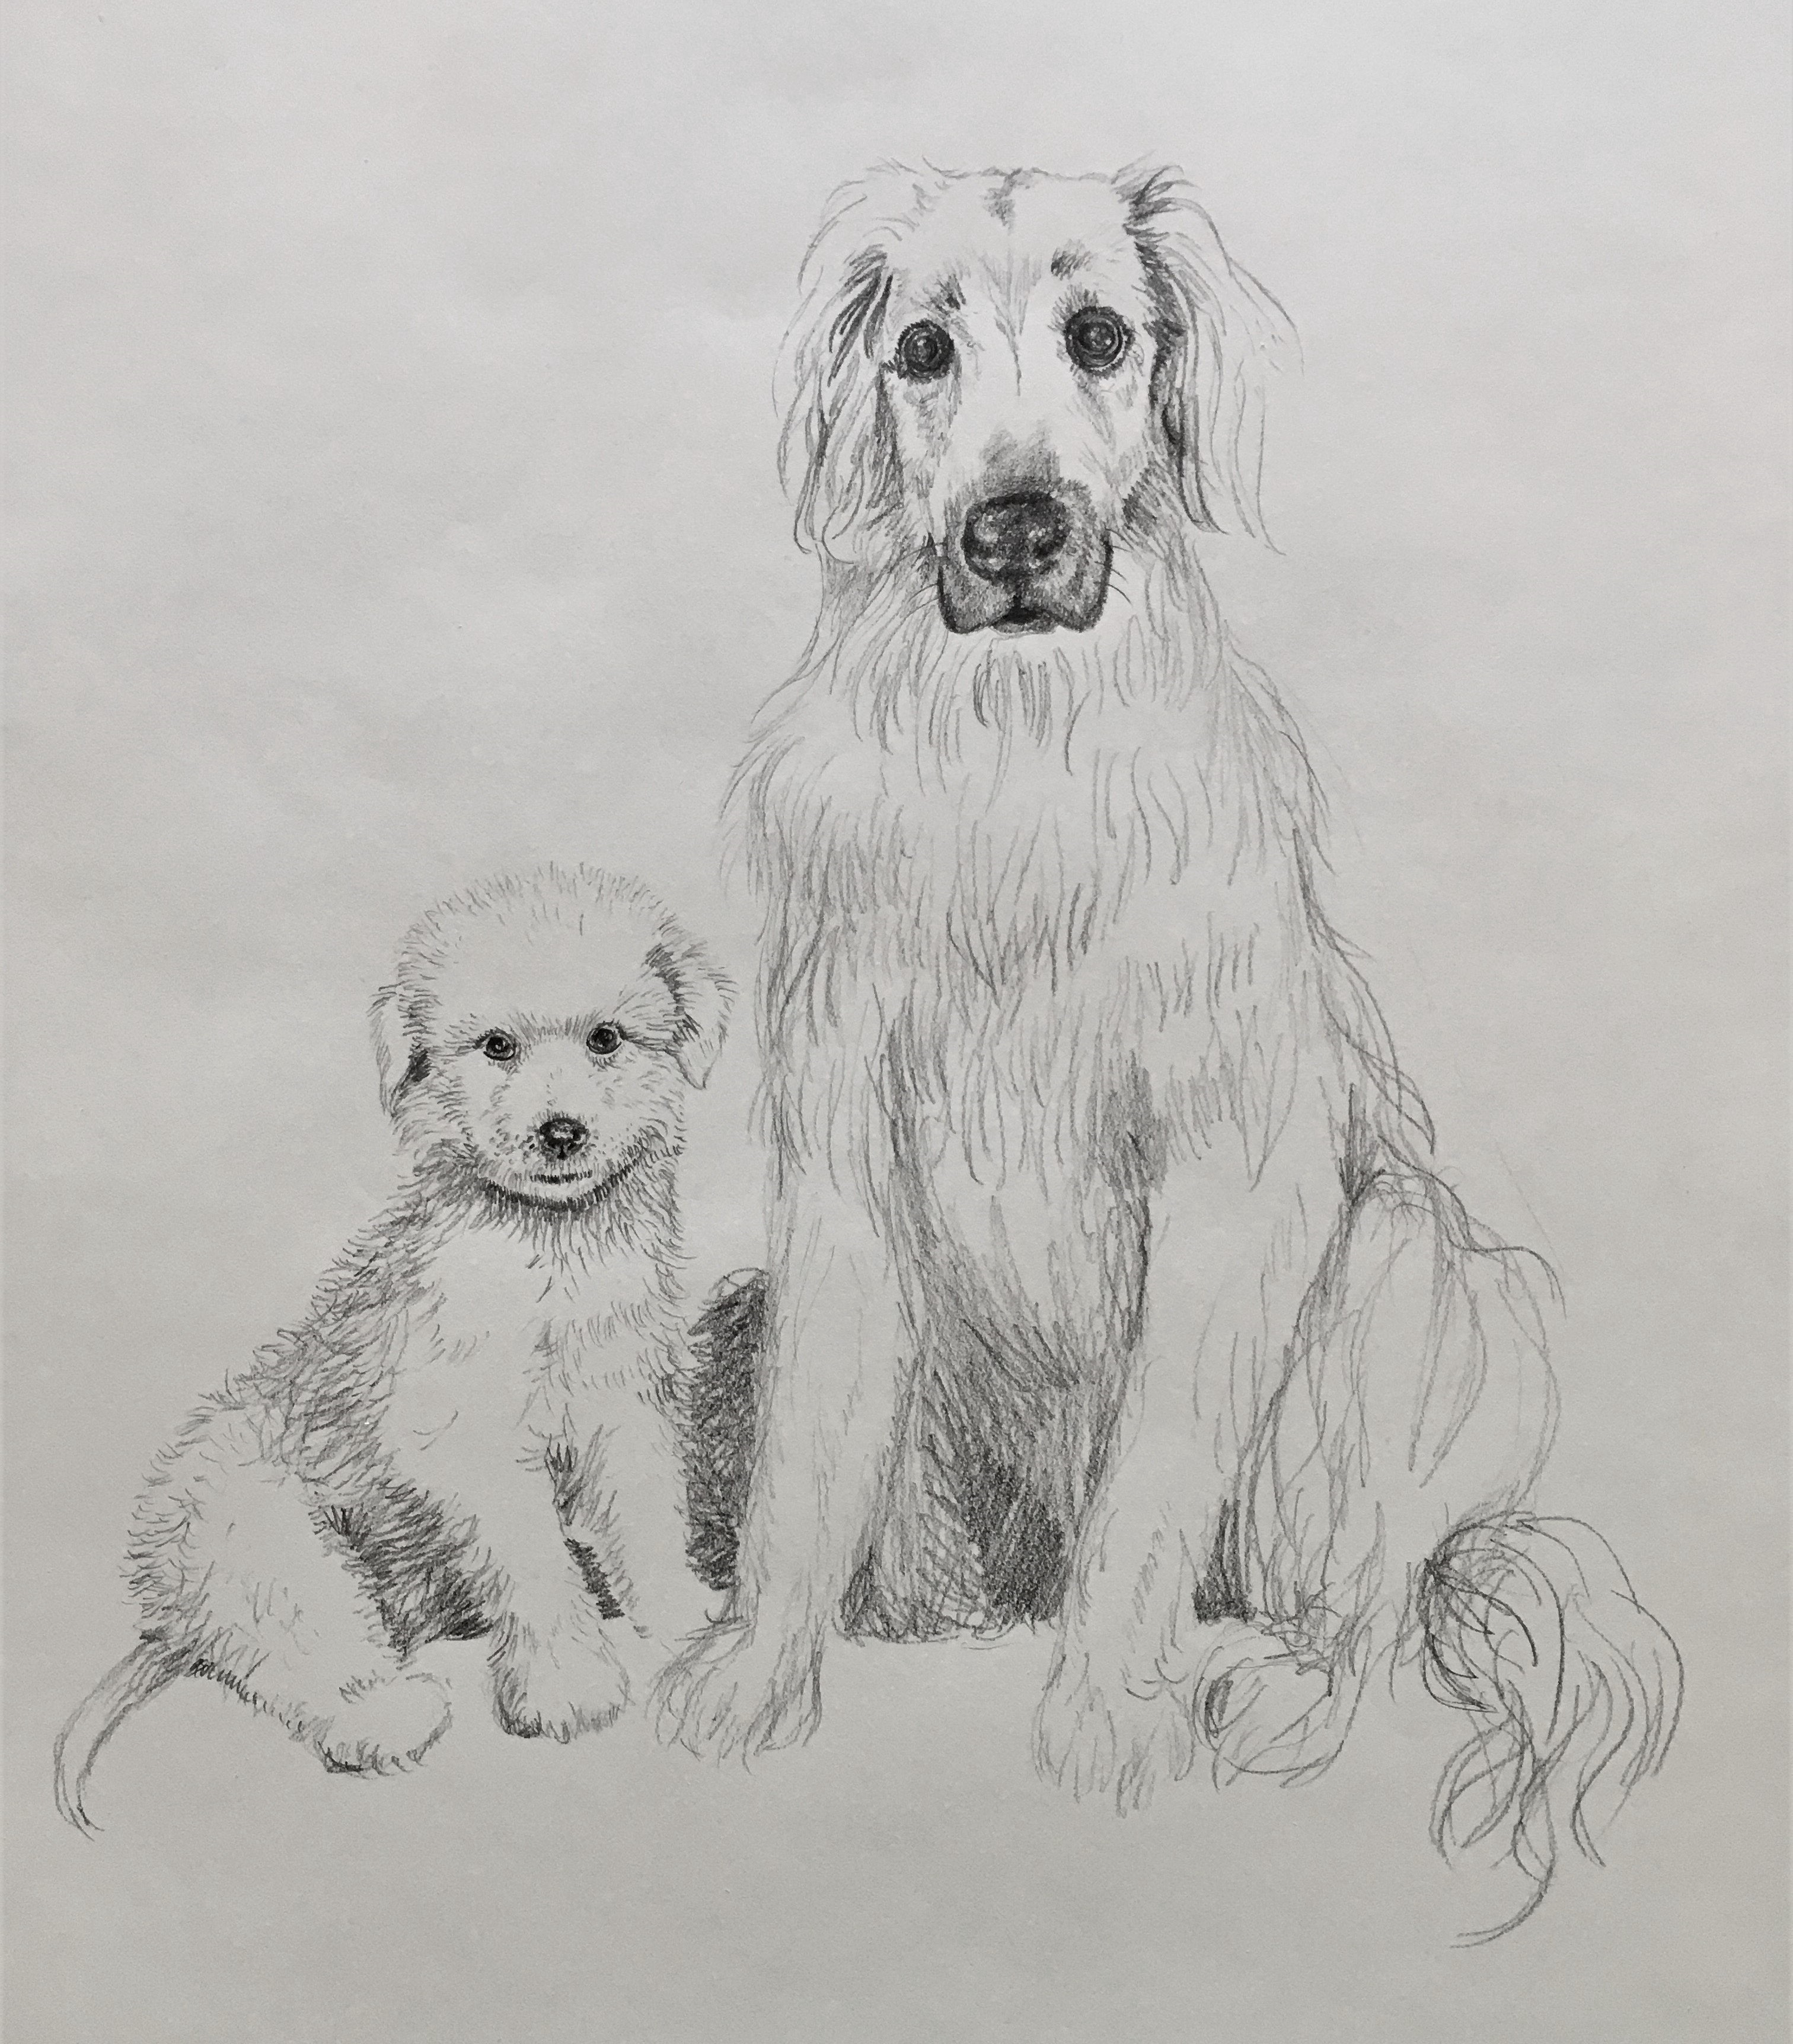 A photorealistic pencil drawing of a two fluffy Great Pyrenees dogs, one a floppy pup and the other looking quite serious.